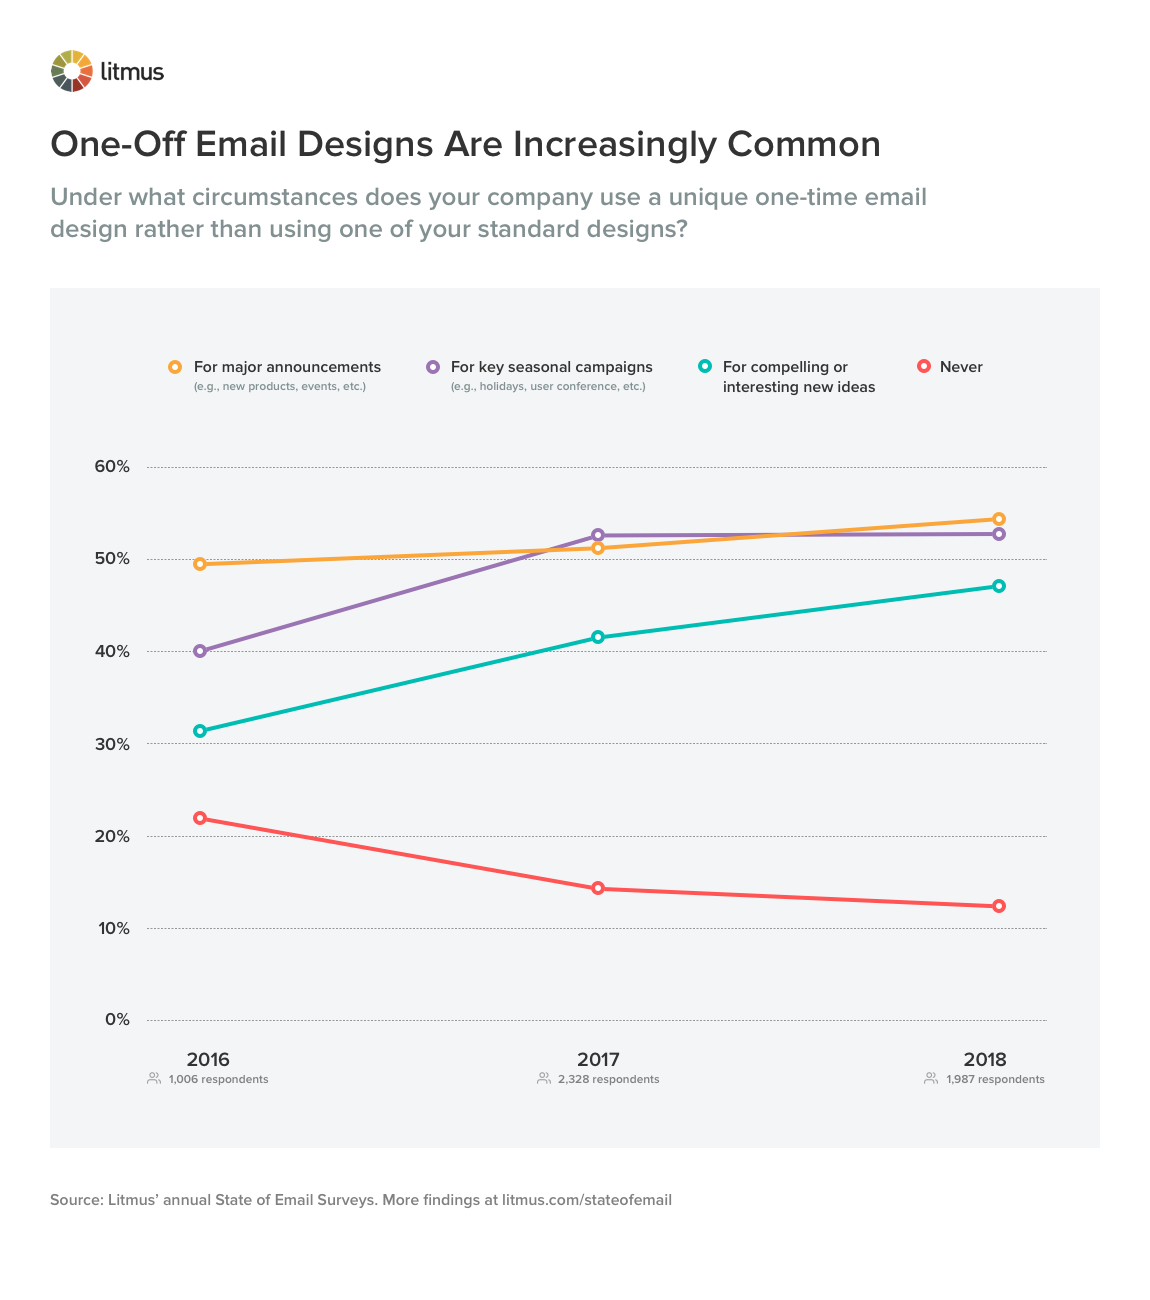 One-Off Email Designs Are Increasingly Common